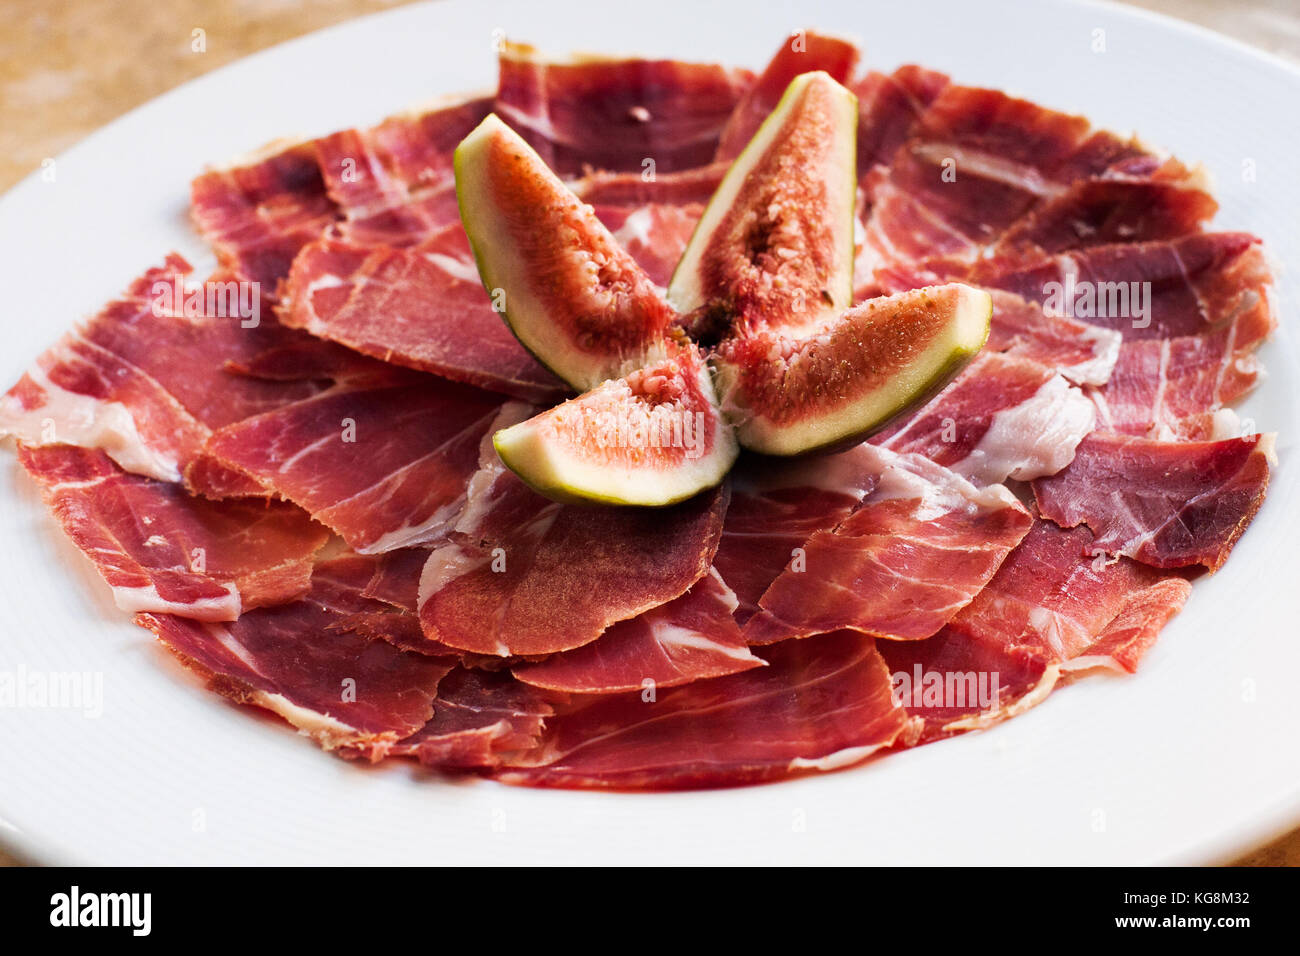 Spanish Cuisine tapas food Jamon with fig. Beautiful appetite slices of raw pork meat, white plate background. Stock Photo